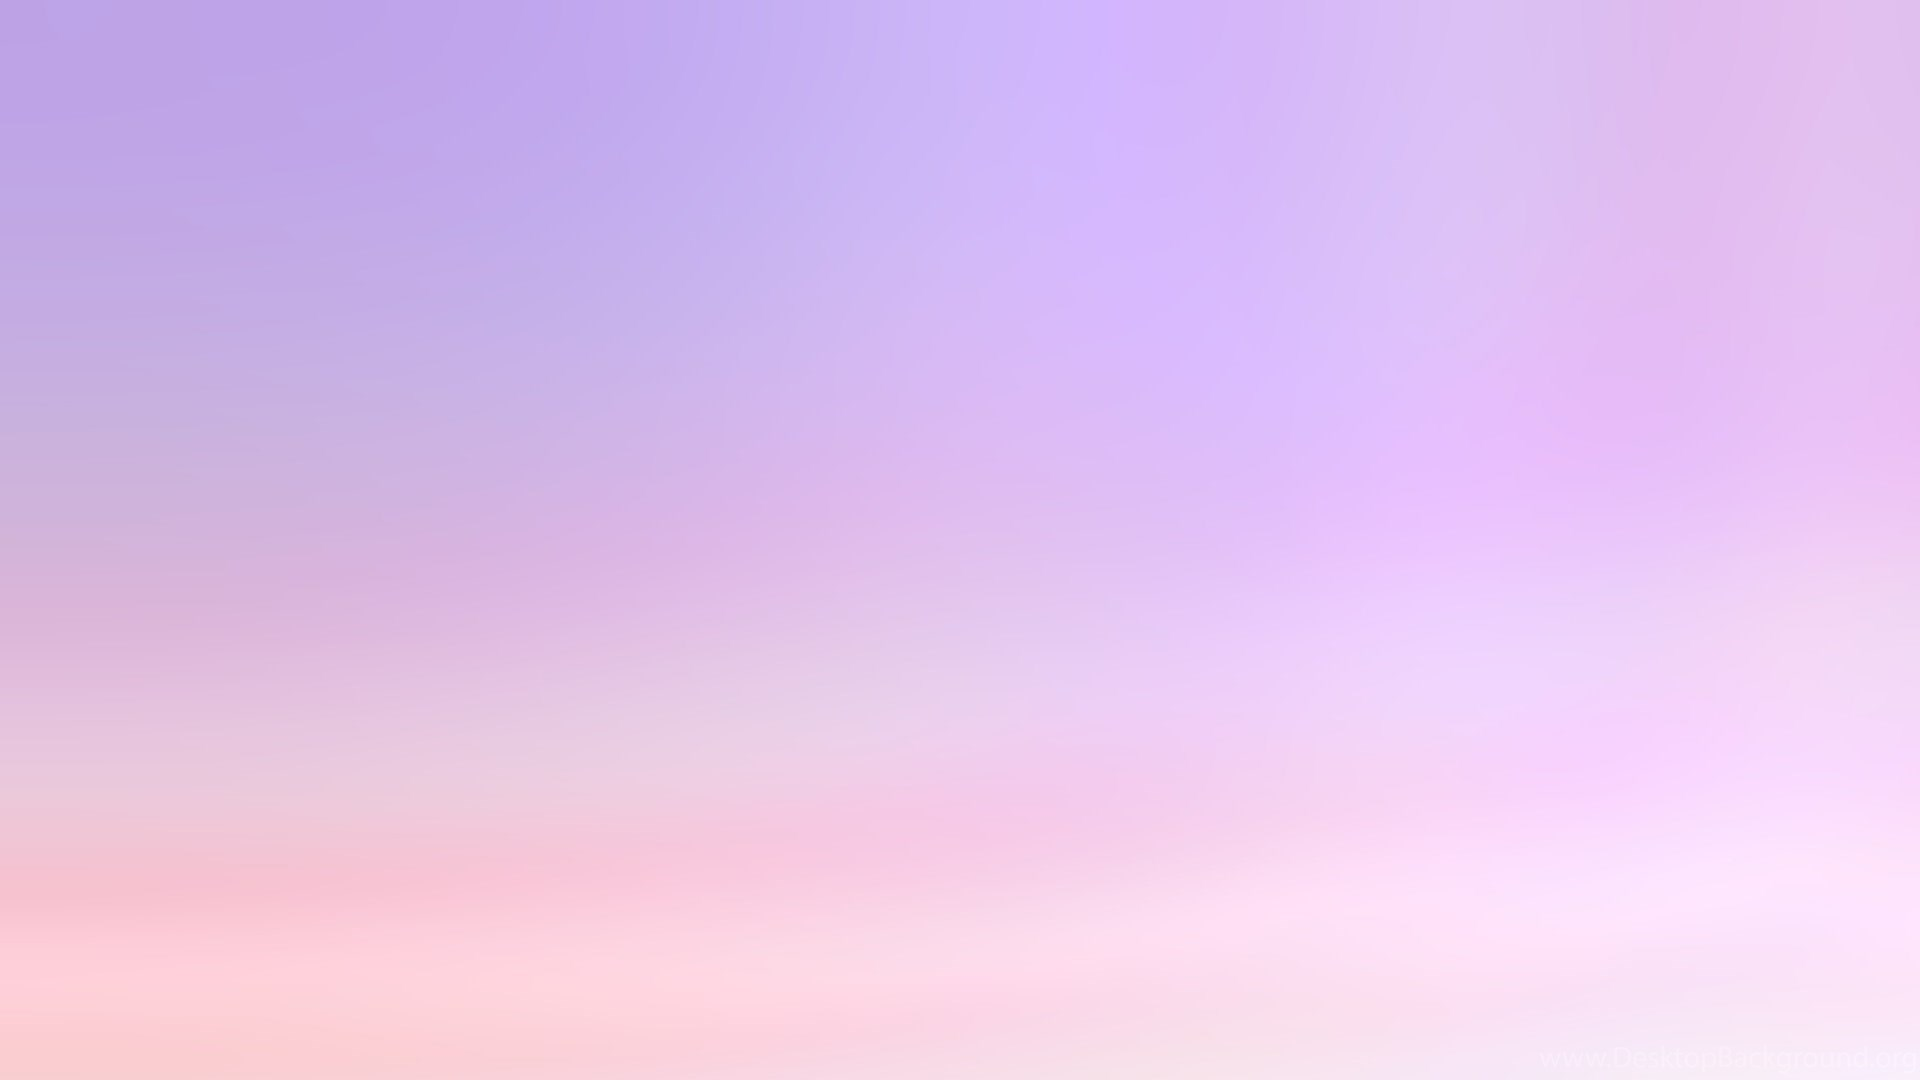 Pastel Gradient Backgrounds Tumblr Wallpaper Desktop Background